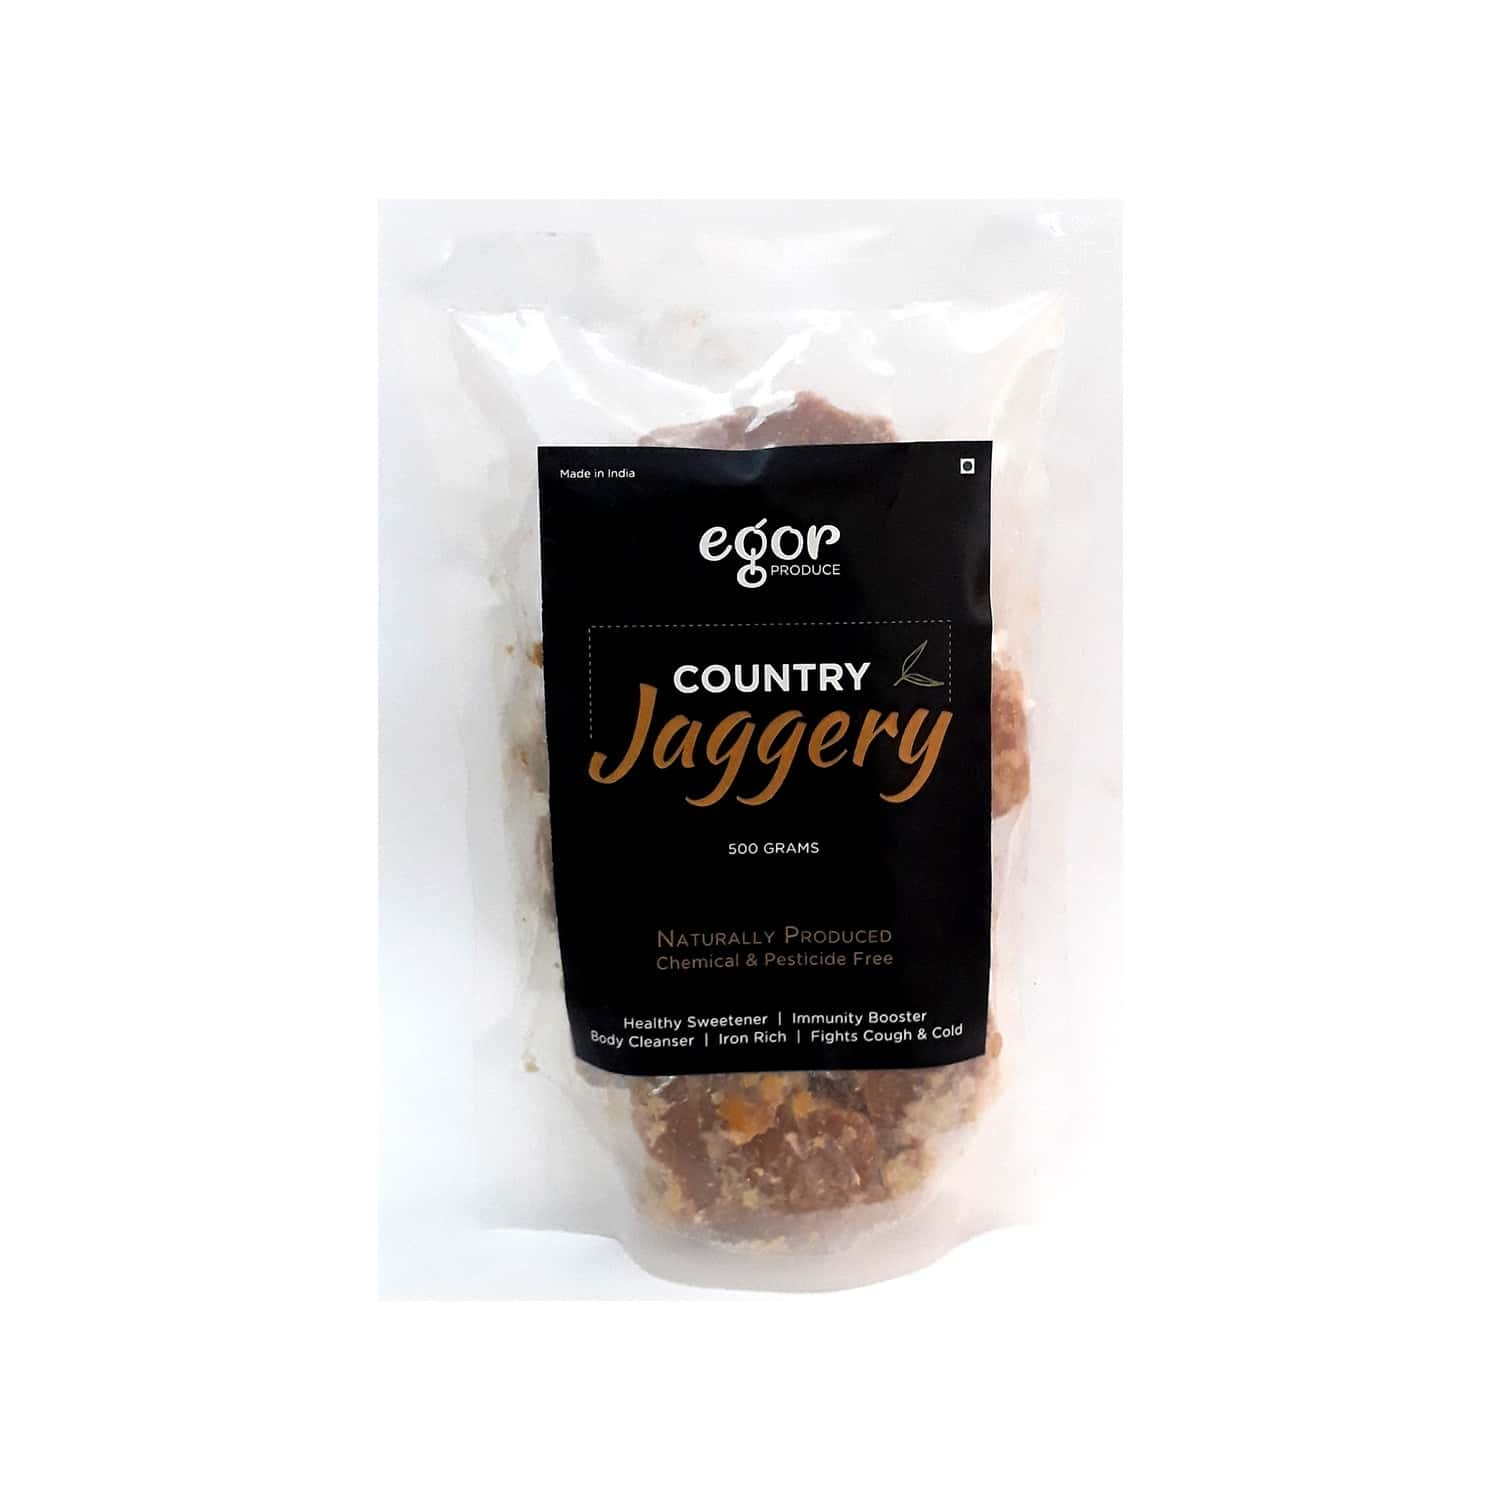 Egor Country Jaggery, Organically Produced, Chemical Free, Healthy Sugar Substitute - 500gm